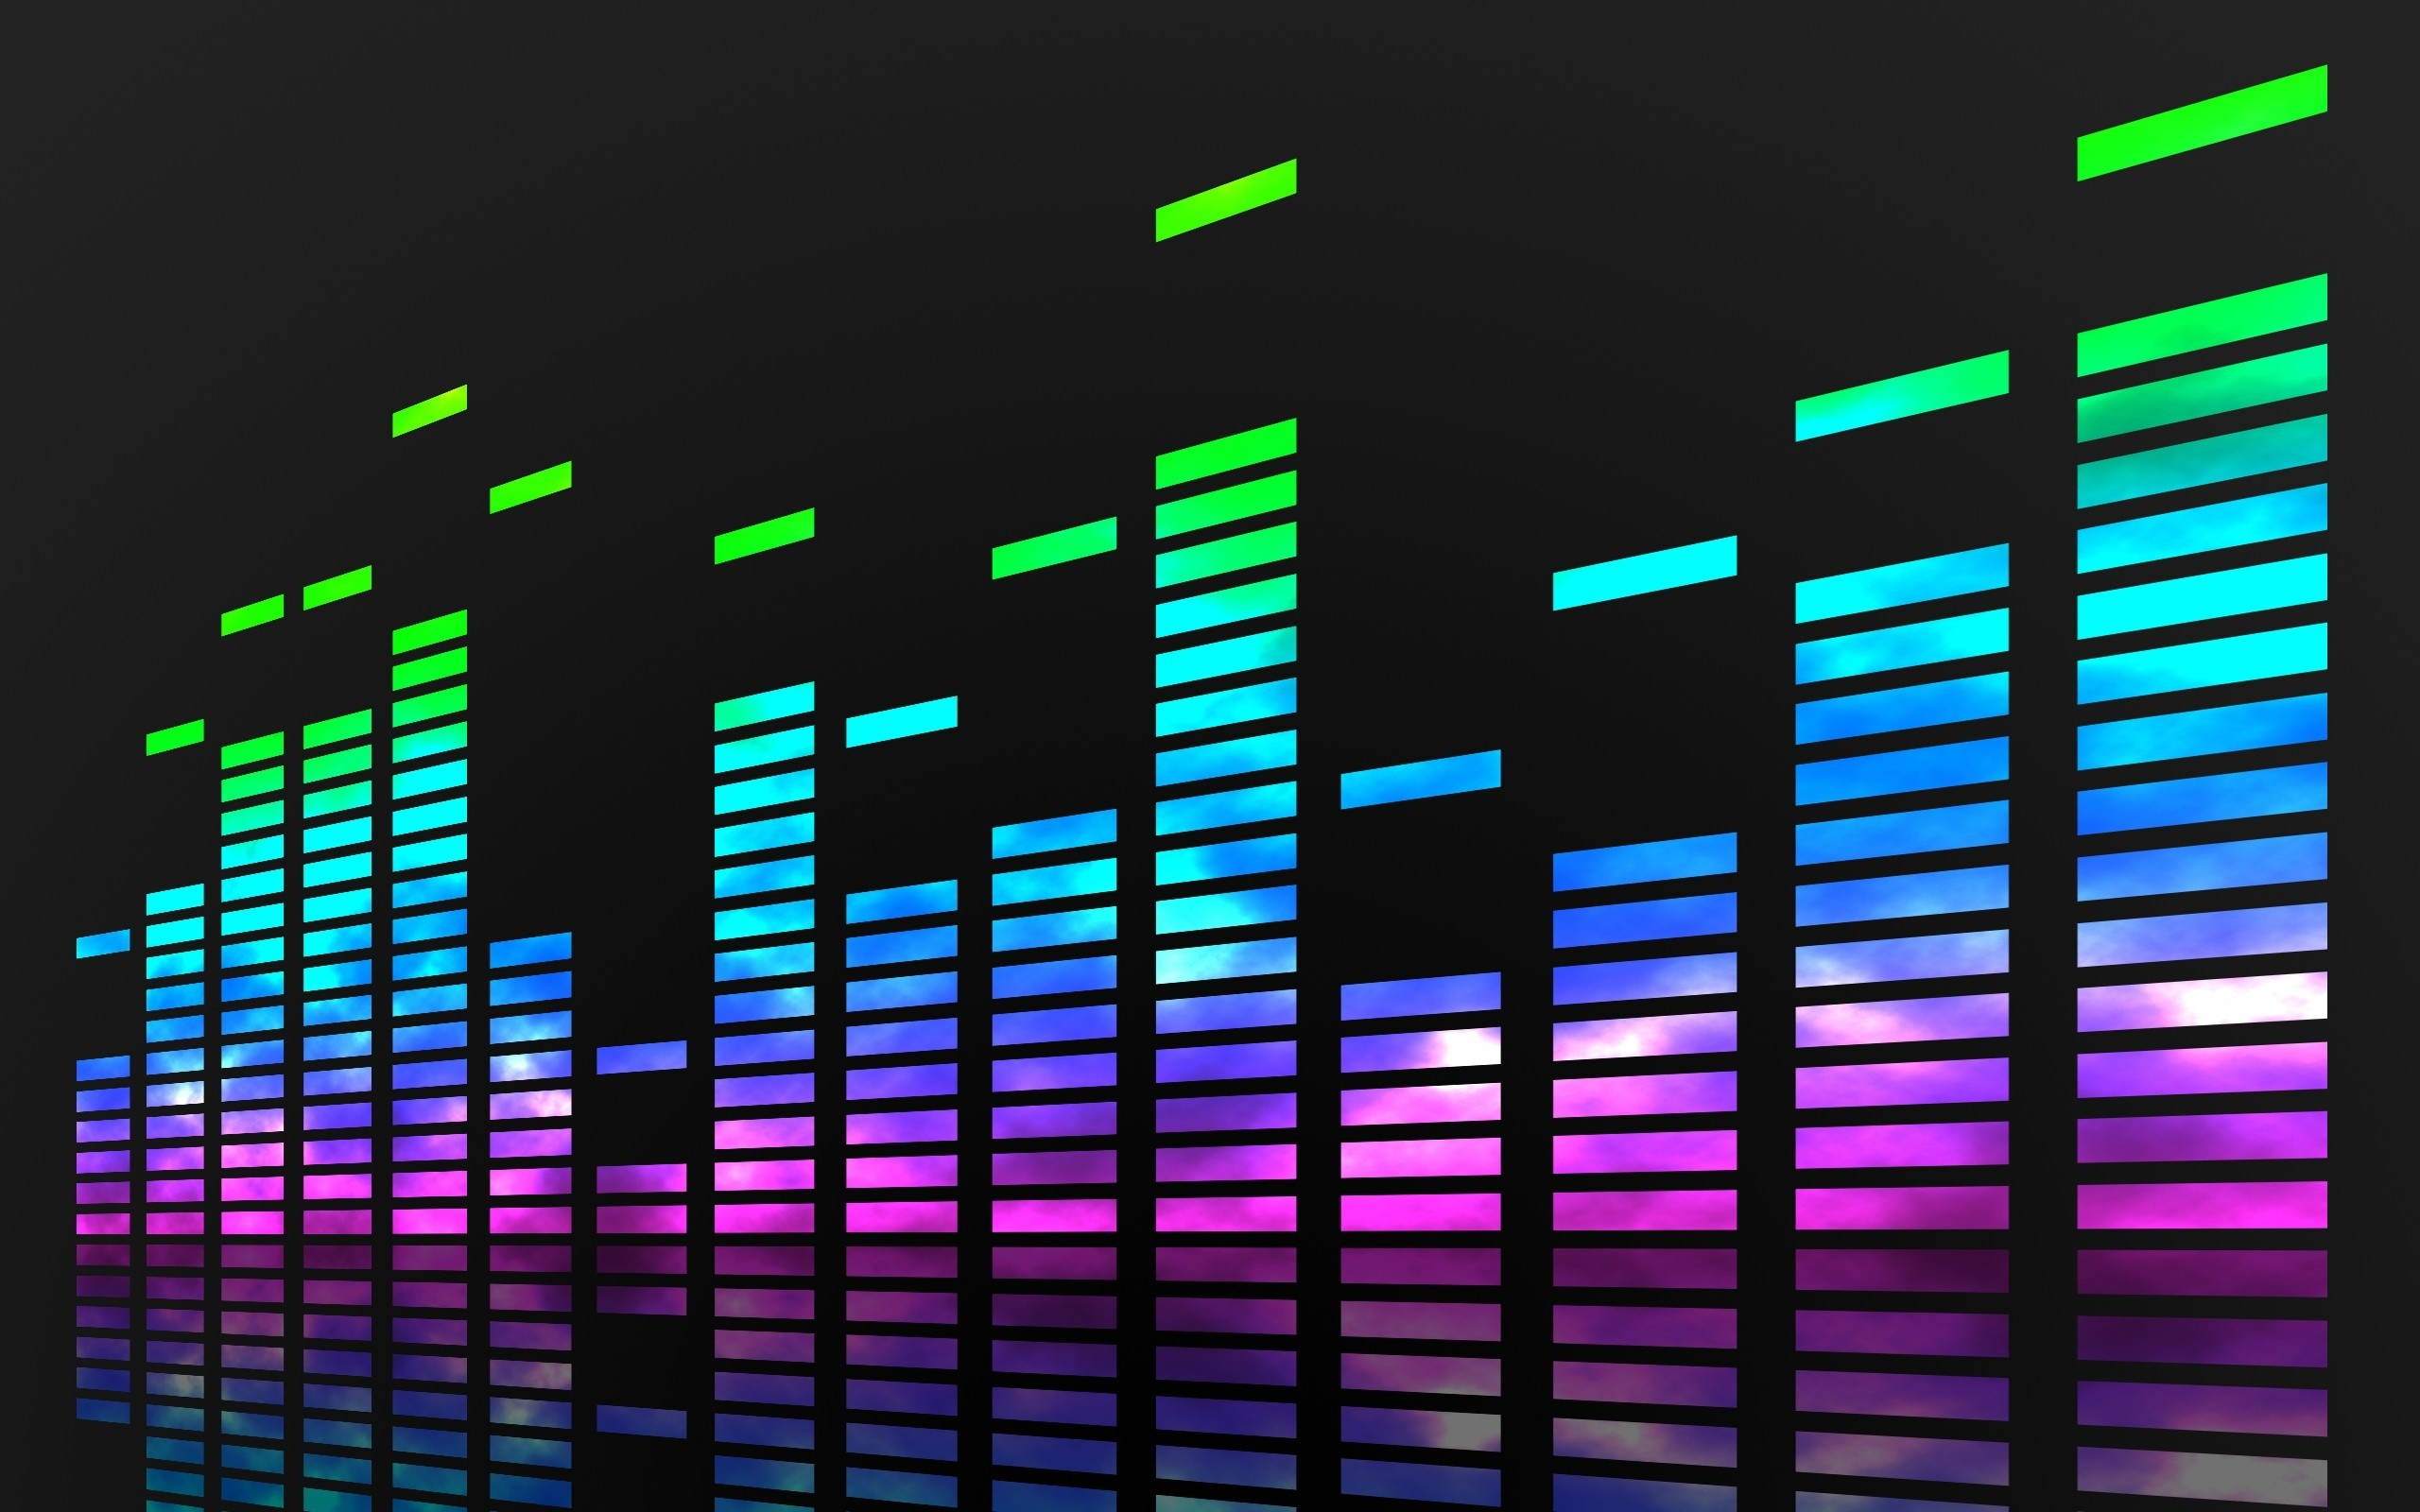 … music sound wallpaper background 8630 umad com …